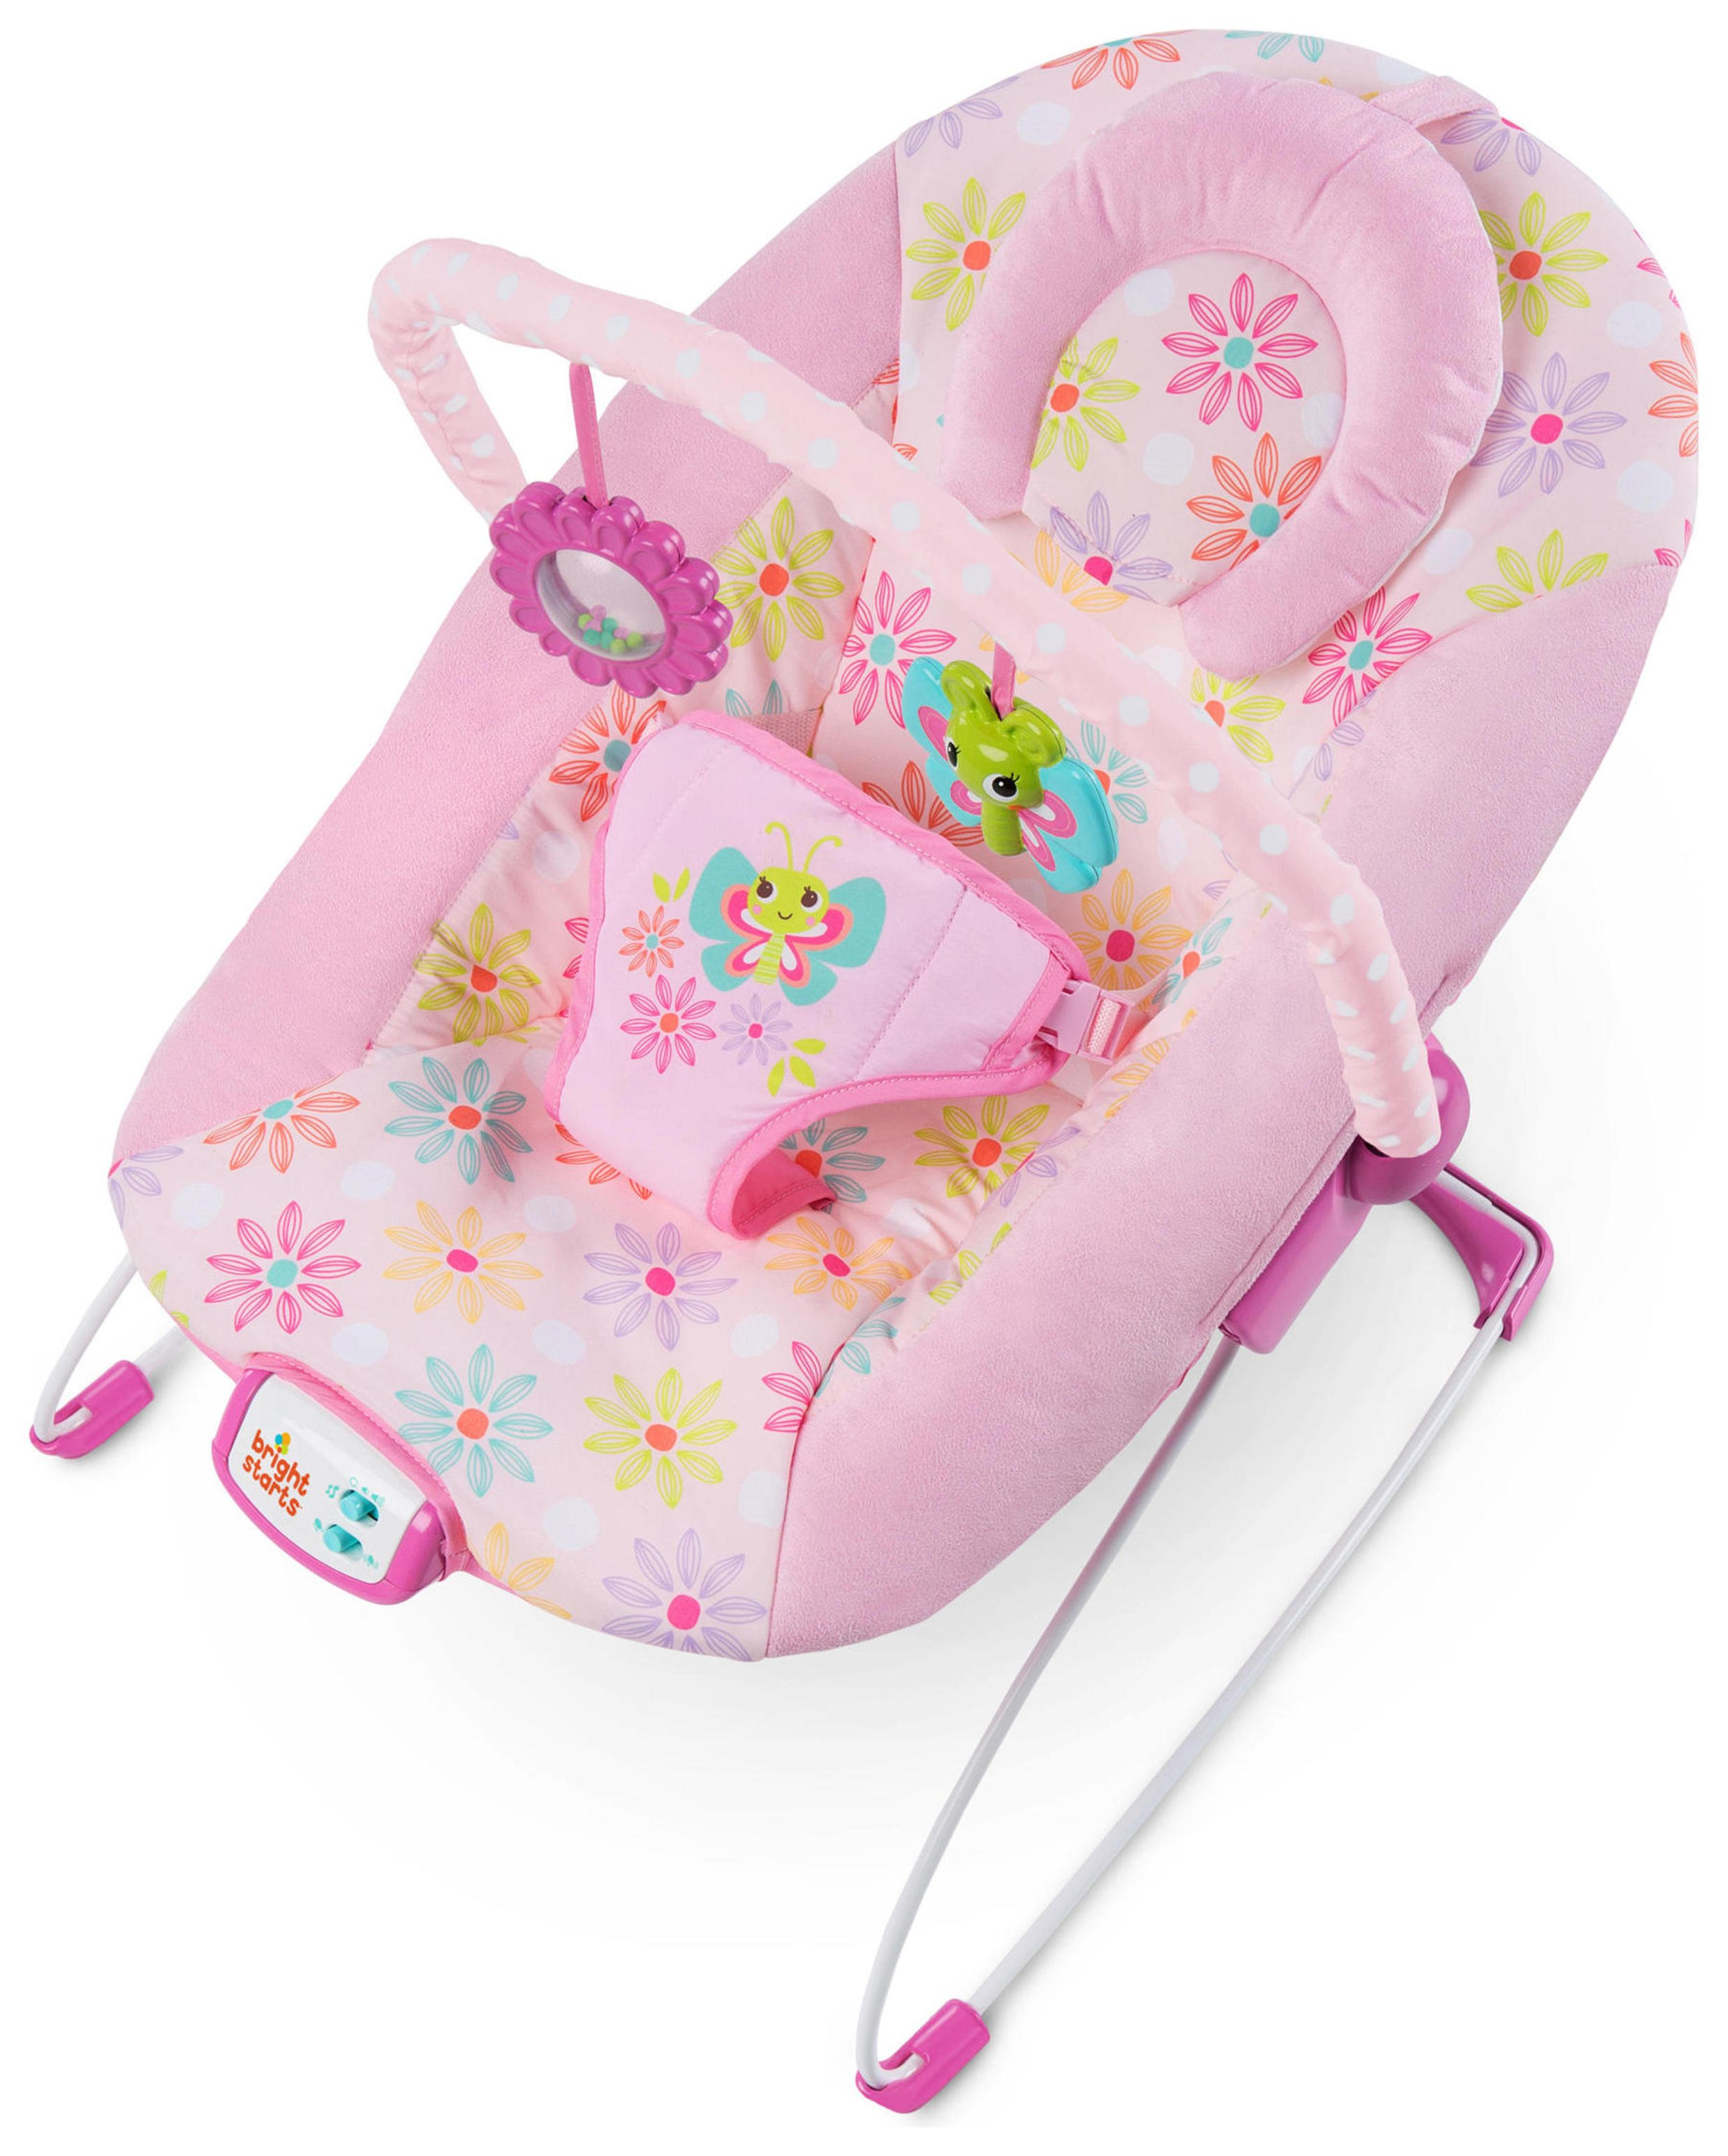 Image of Bright Starts Butterfly Dreams Bouncer